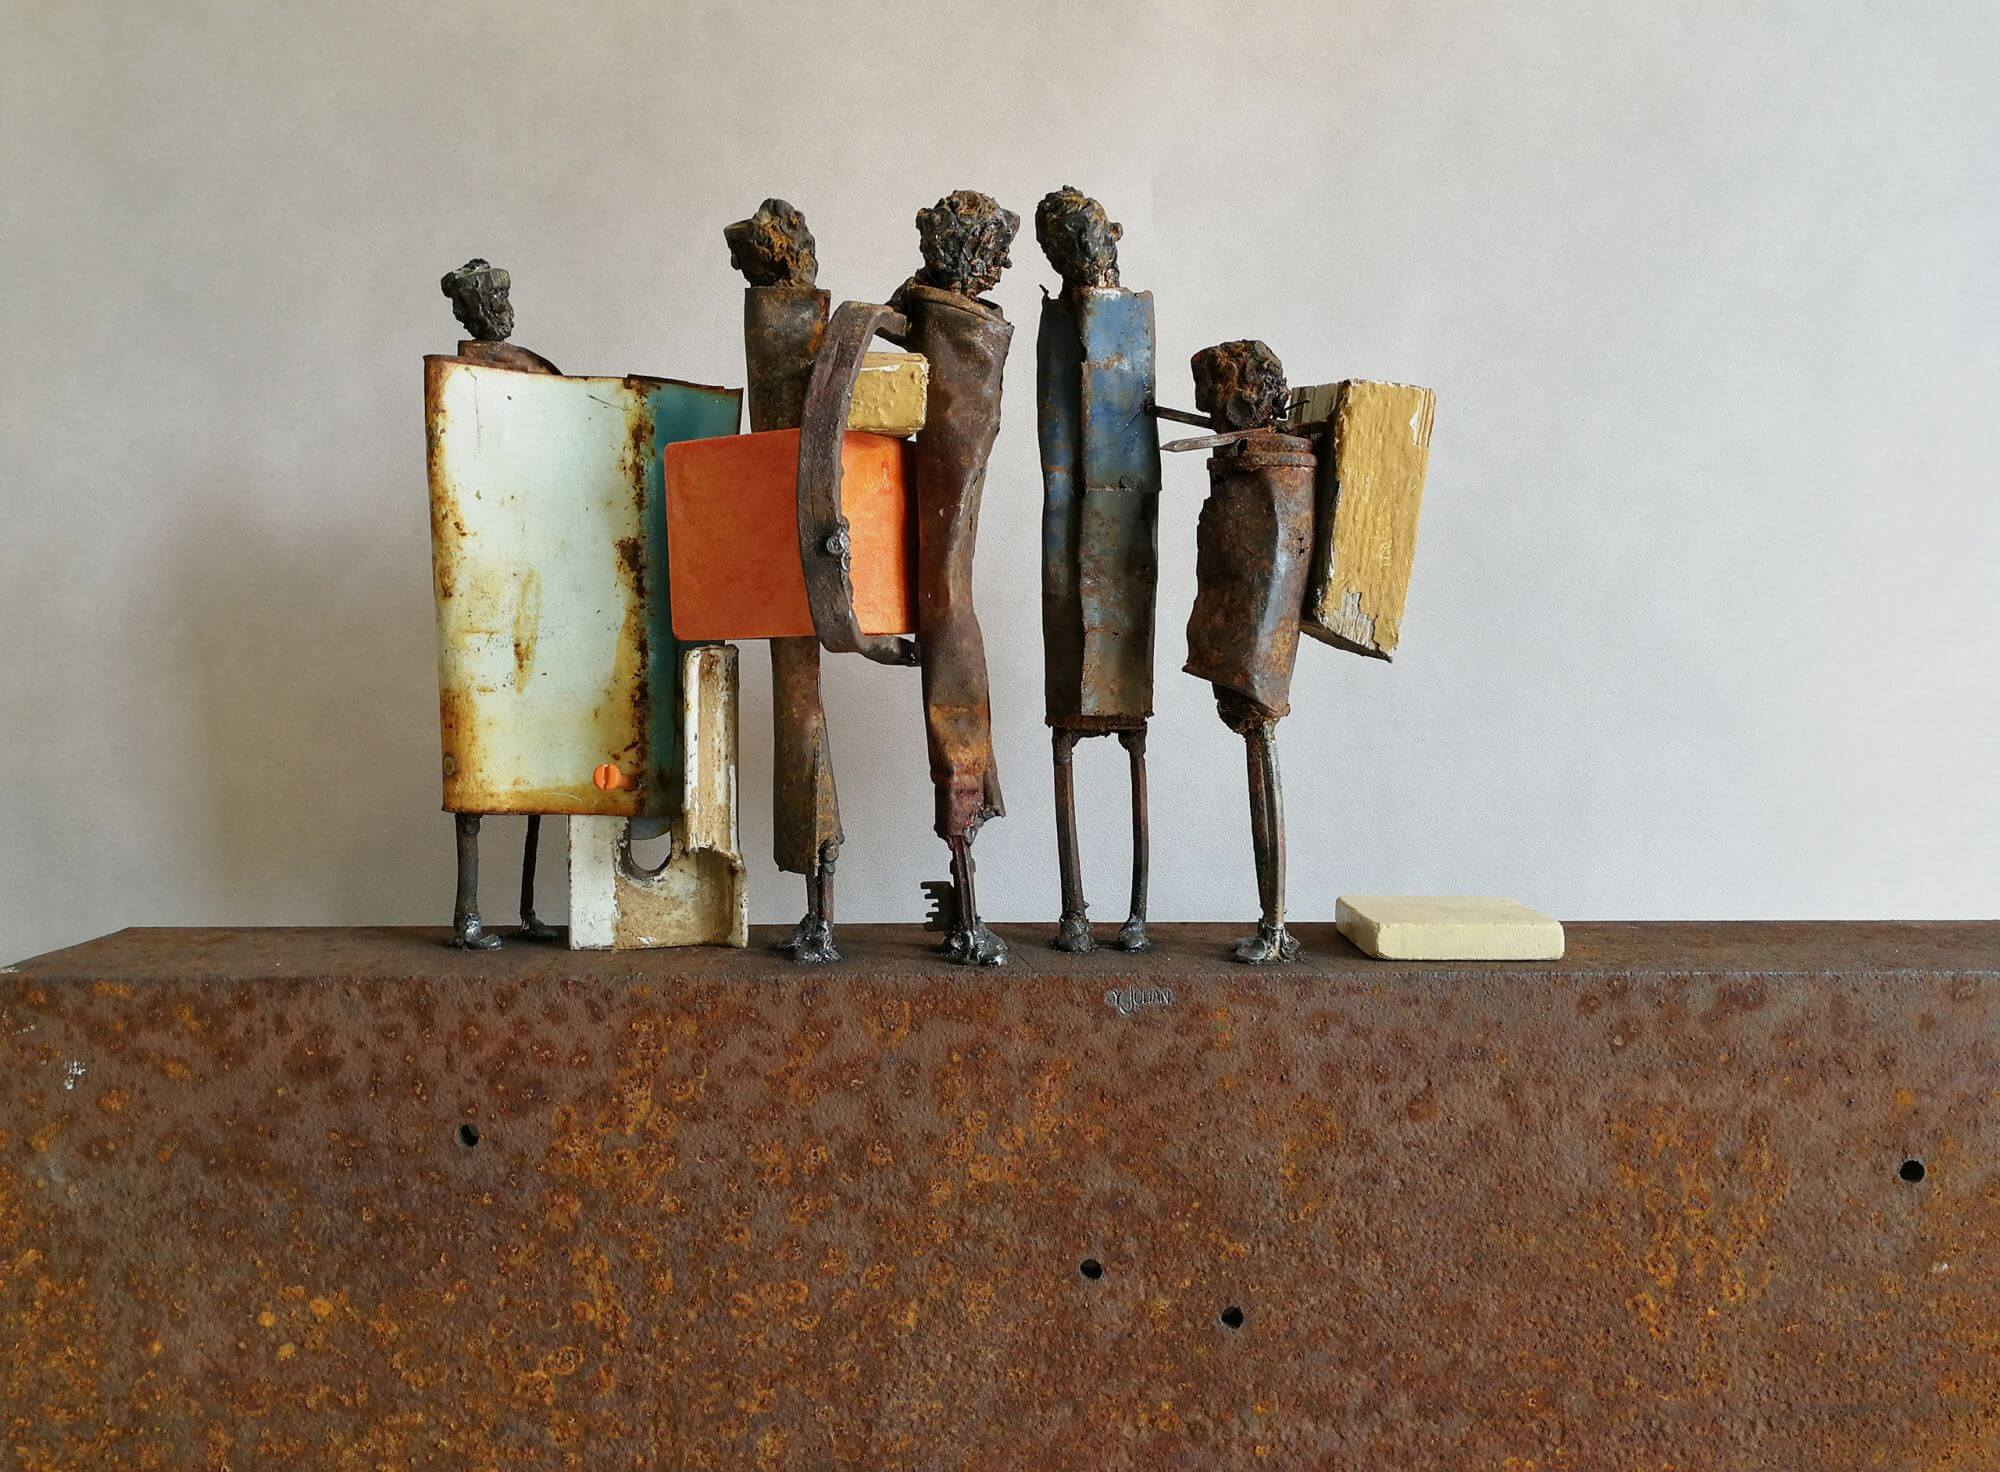 Five differntly sized and coloured metal figures standing in line